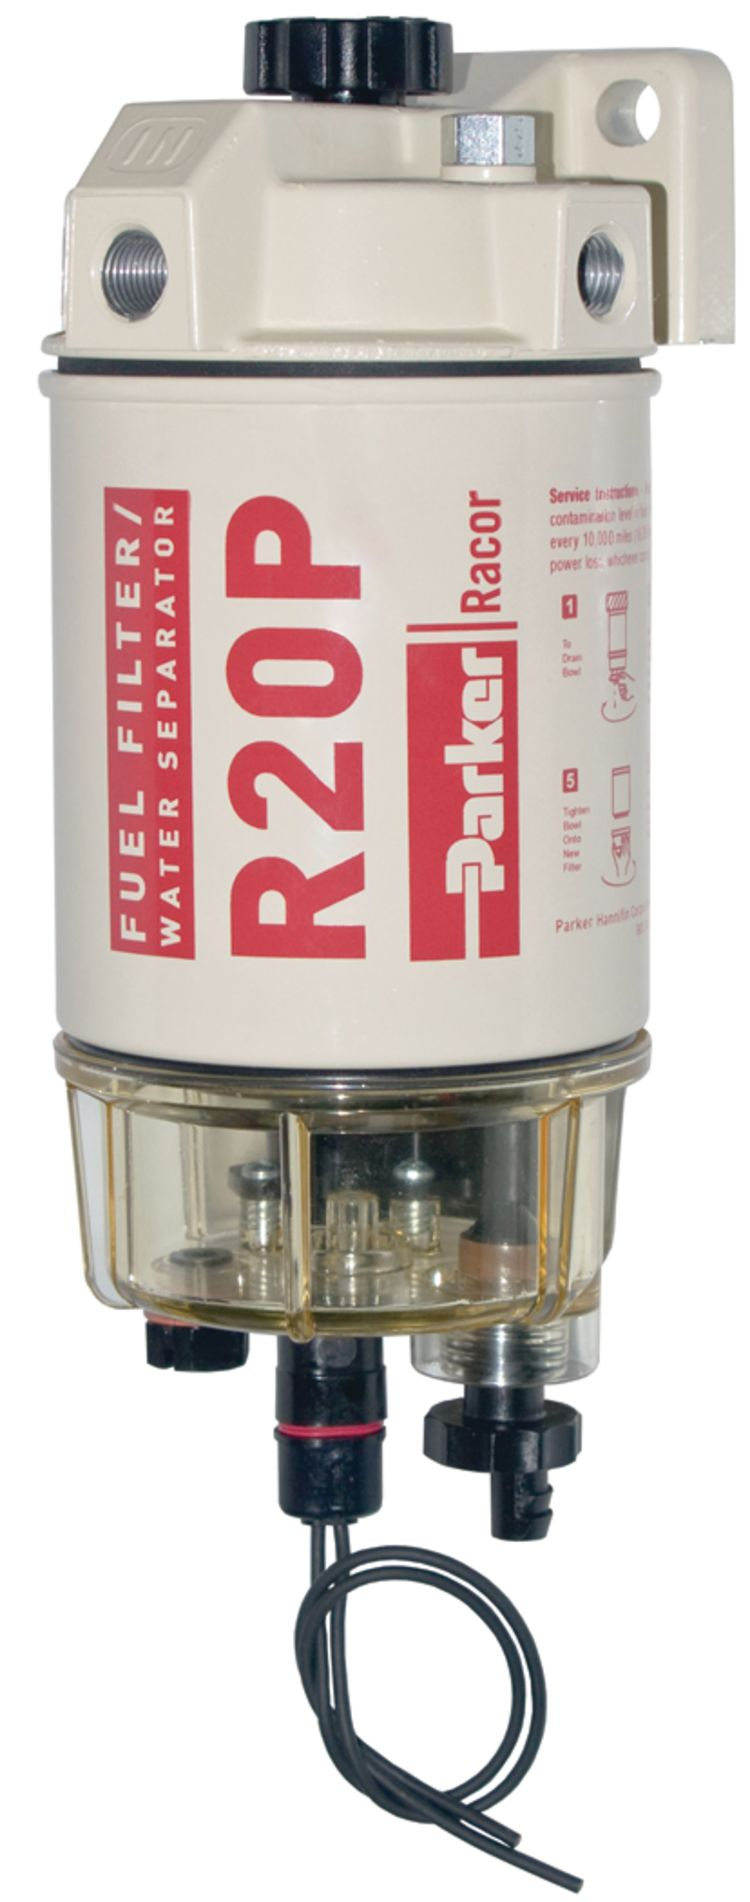 230R Diesel Spin-On Fuel Filter - with Clear Bowl and Heater